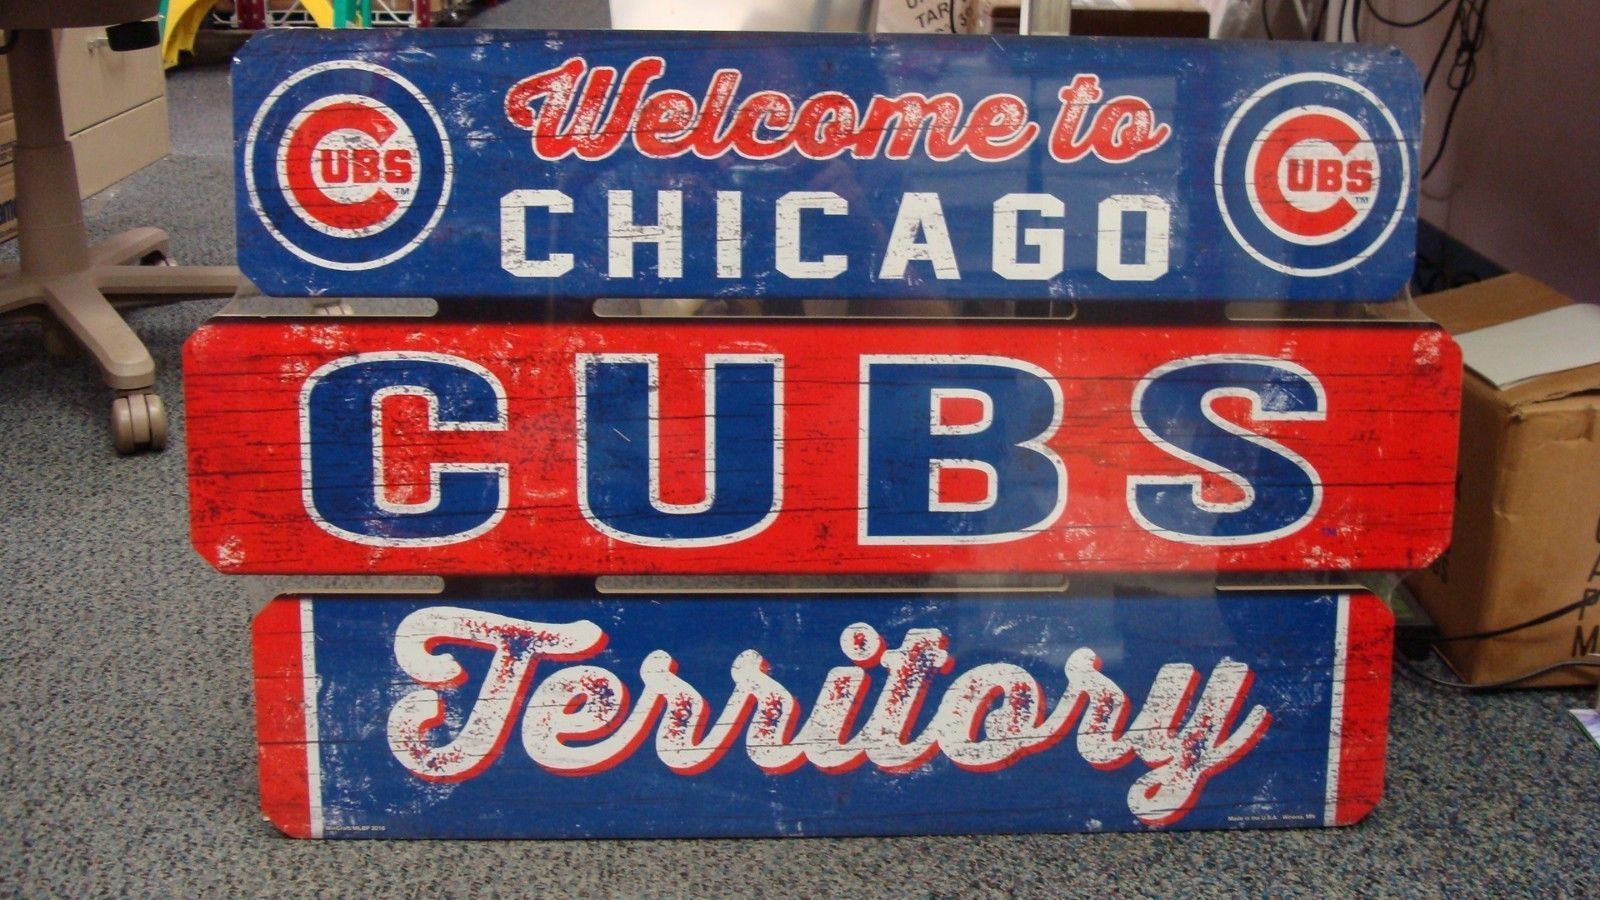 Chicago Cubs Welcome To Chicago Cubs Territory Wood Sign 19 X30 New Wincraft Wood Signs Chicago Cubs Wincraft